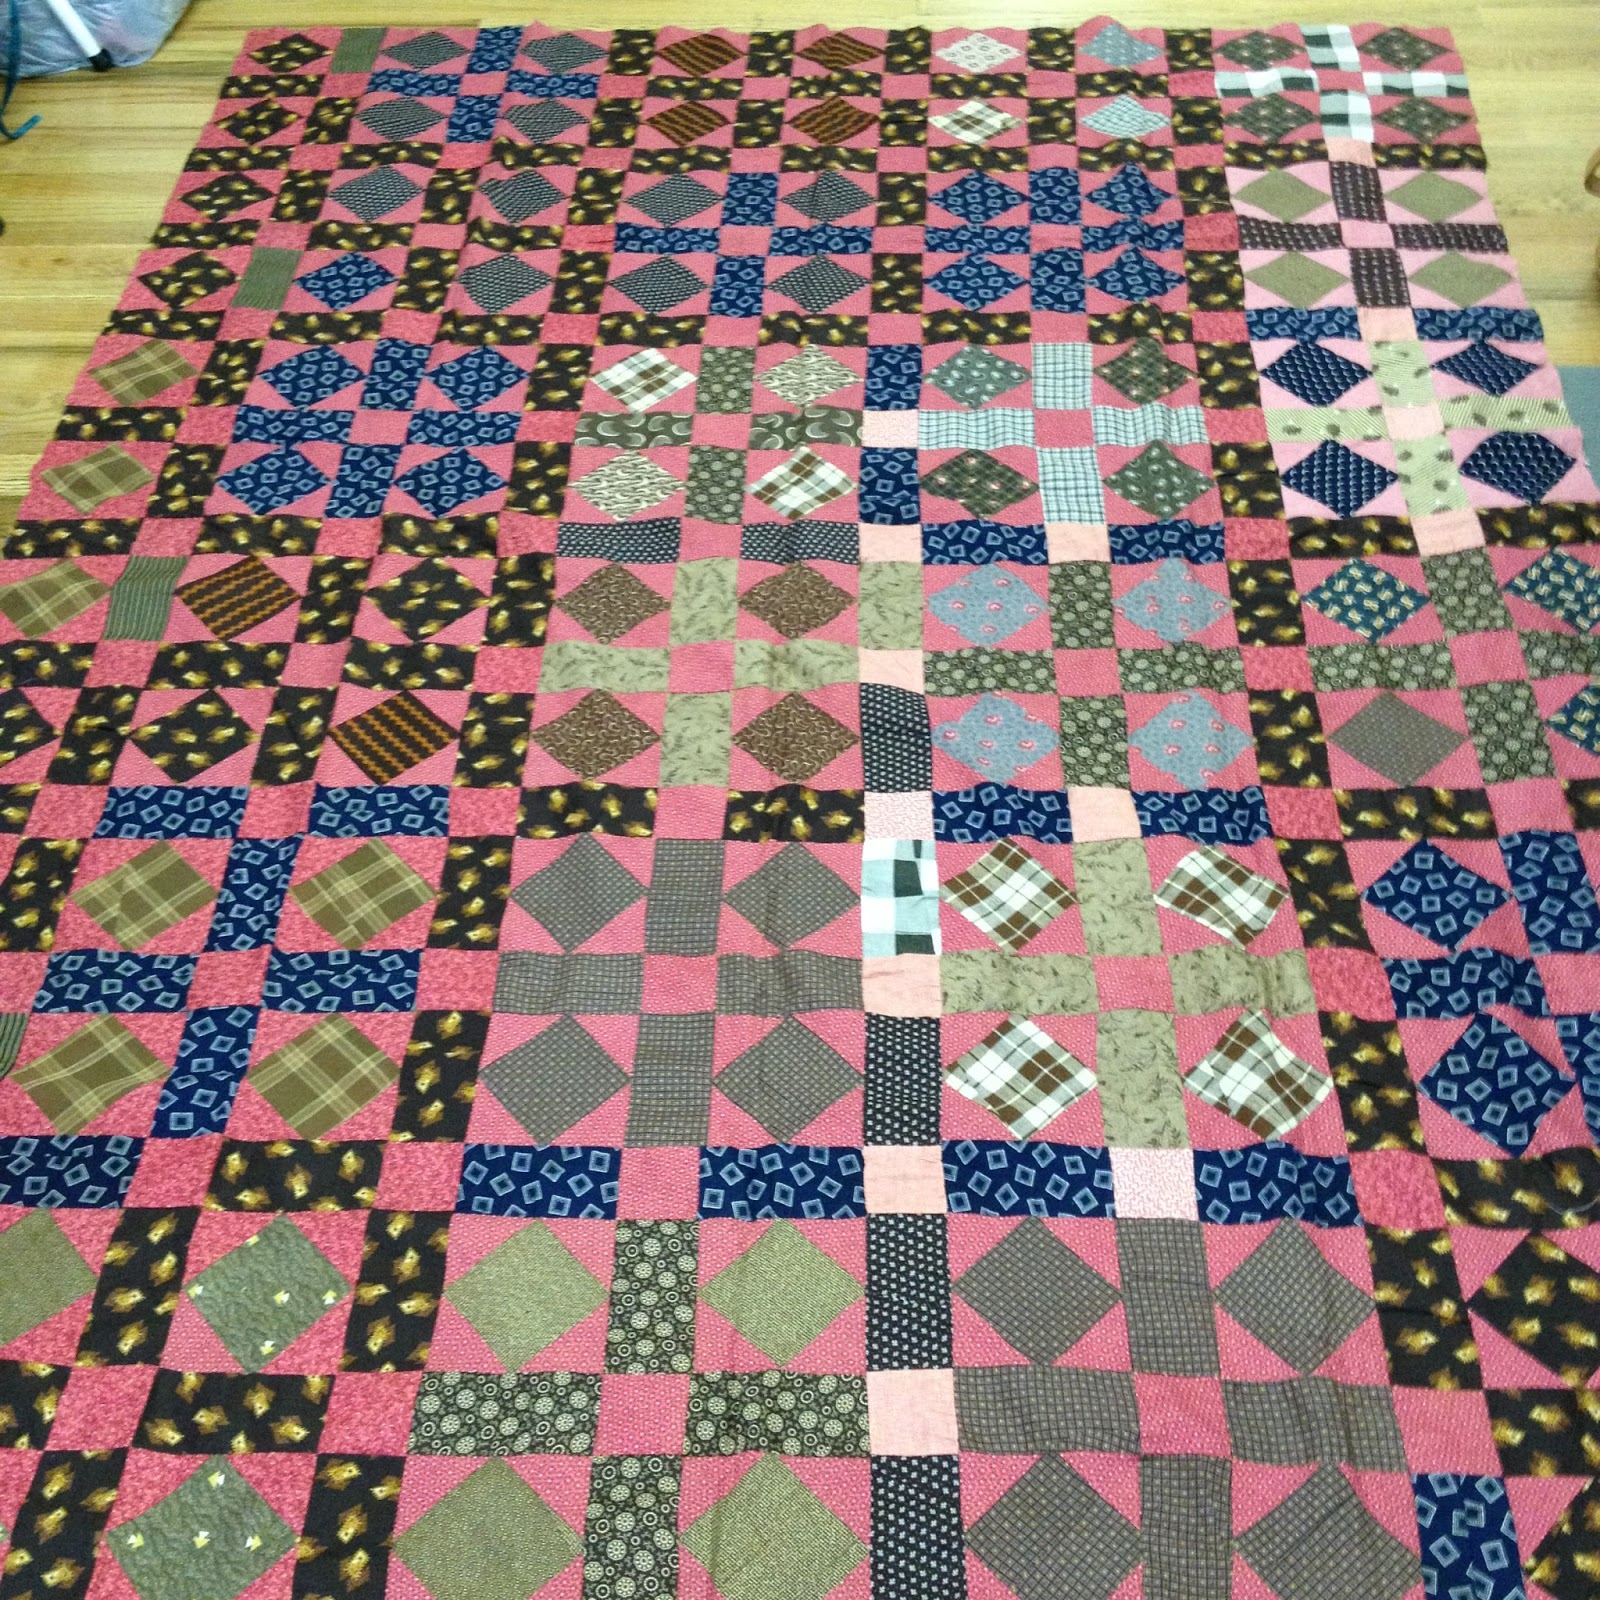 New Quilt Patterns For 2015 : My Joyful Journey: A New Old Quilt Top